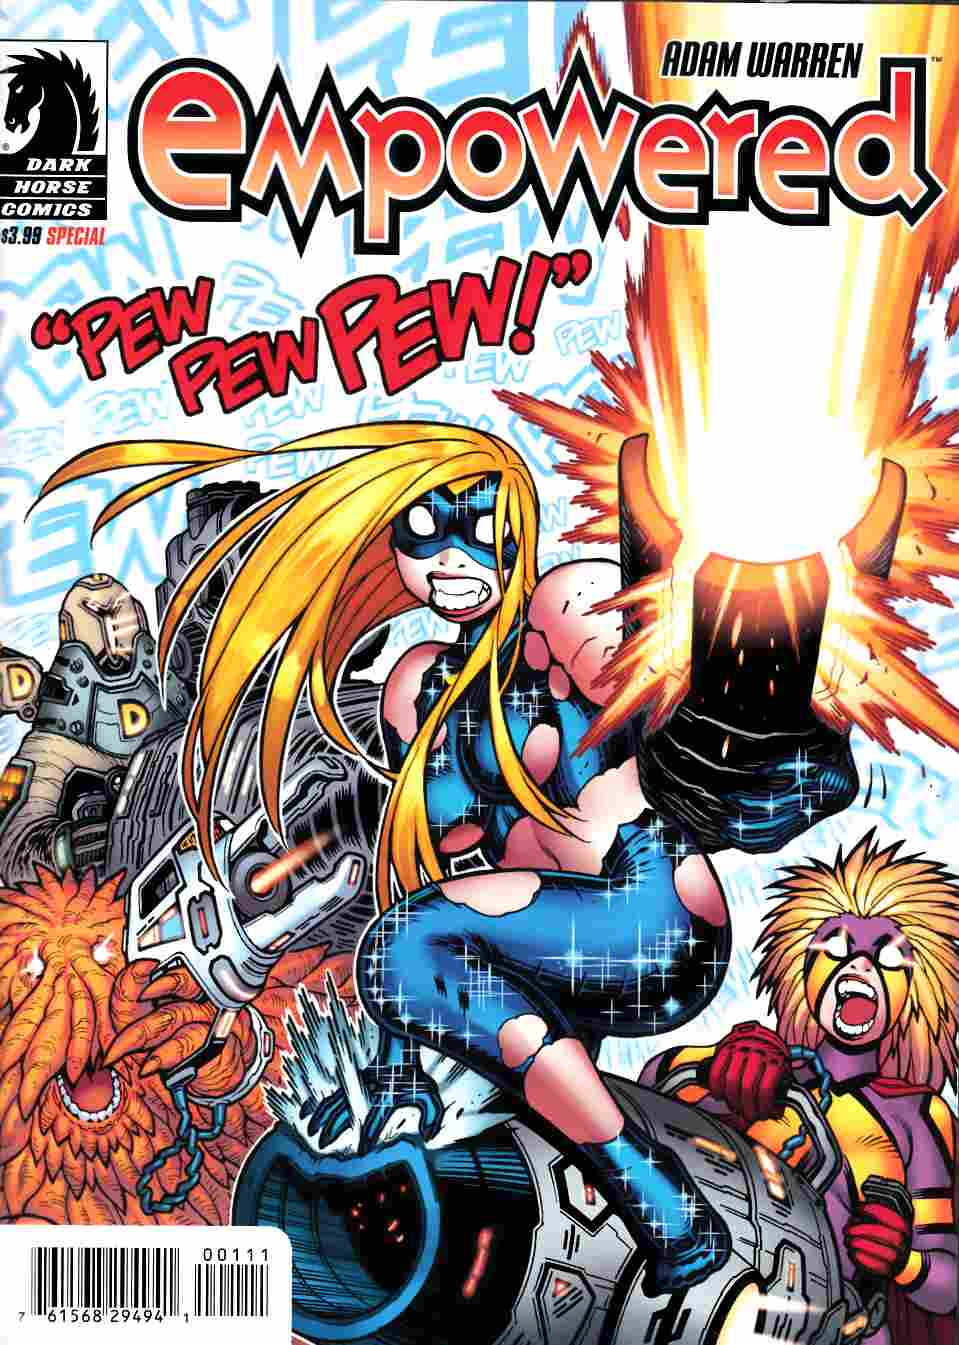 Empowered Special #7 Pew Pew Pew [Dark Horse Comic] LARGE